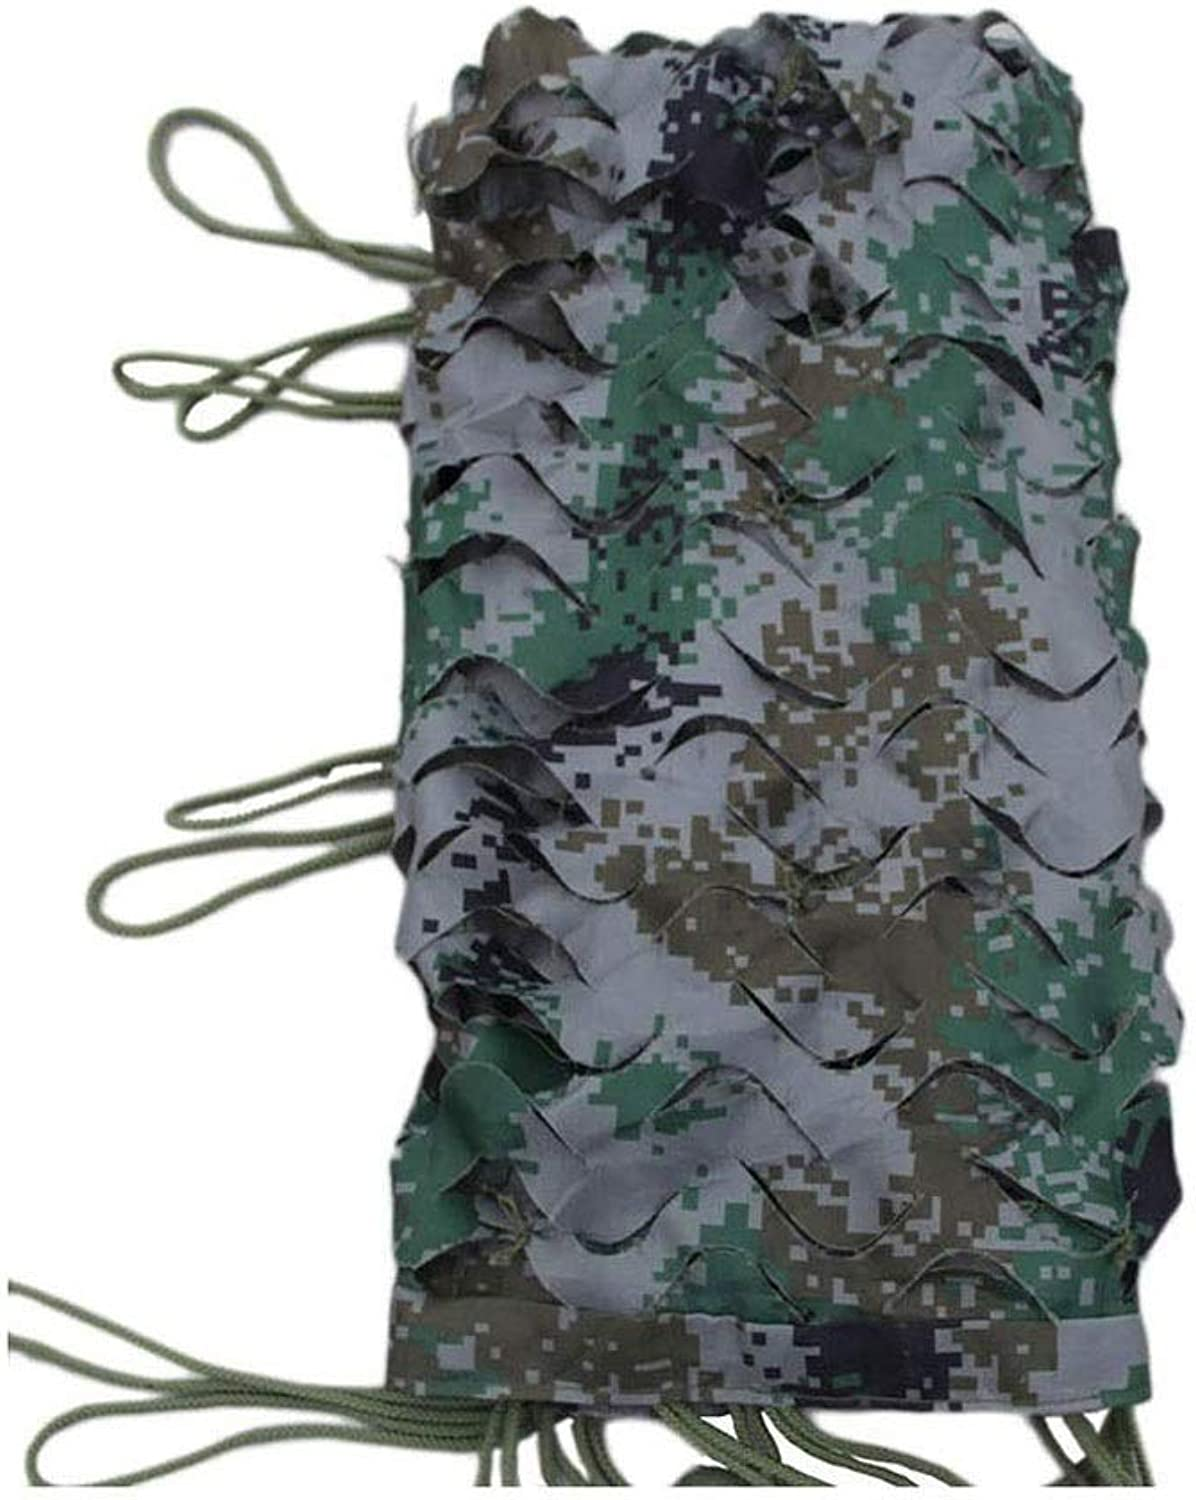 Camo Sunshade Camouflage Netting Tree House Decoration Nets Military Camo Nets Outdoor Camping Awning Shelter (Size   10x10m)